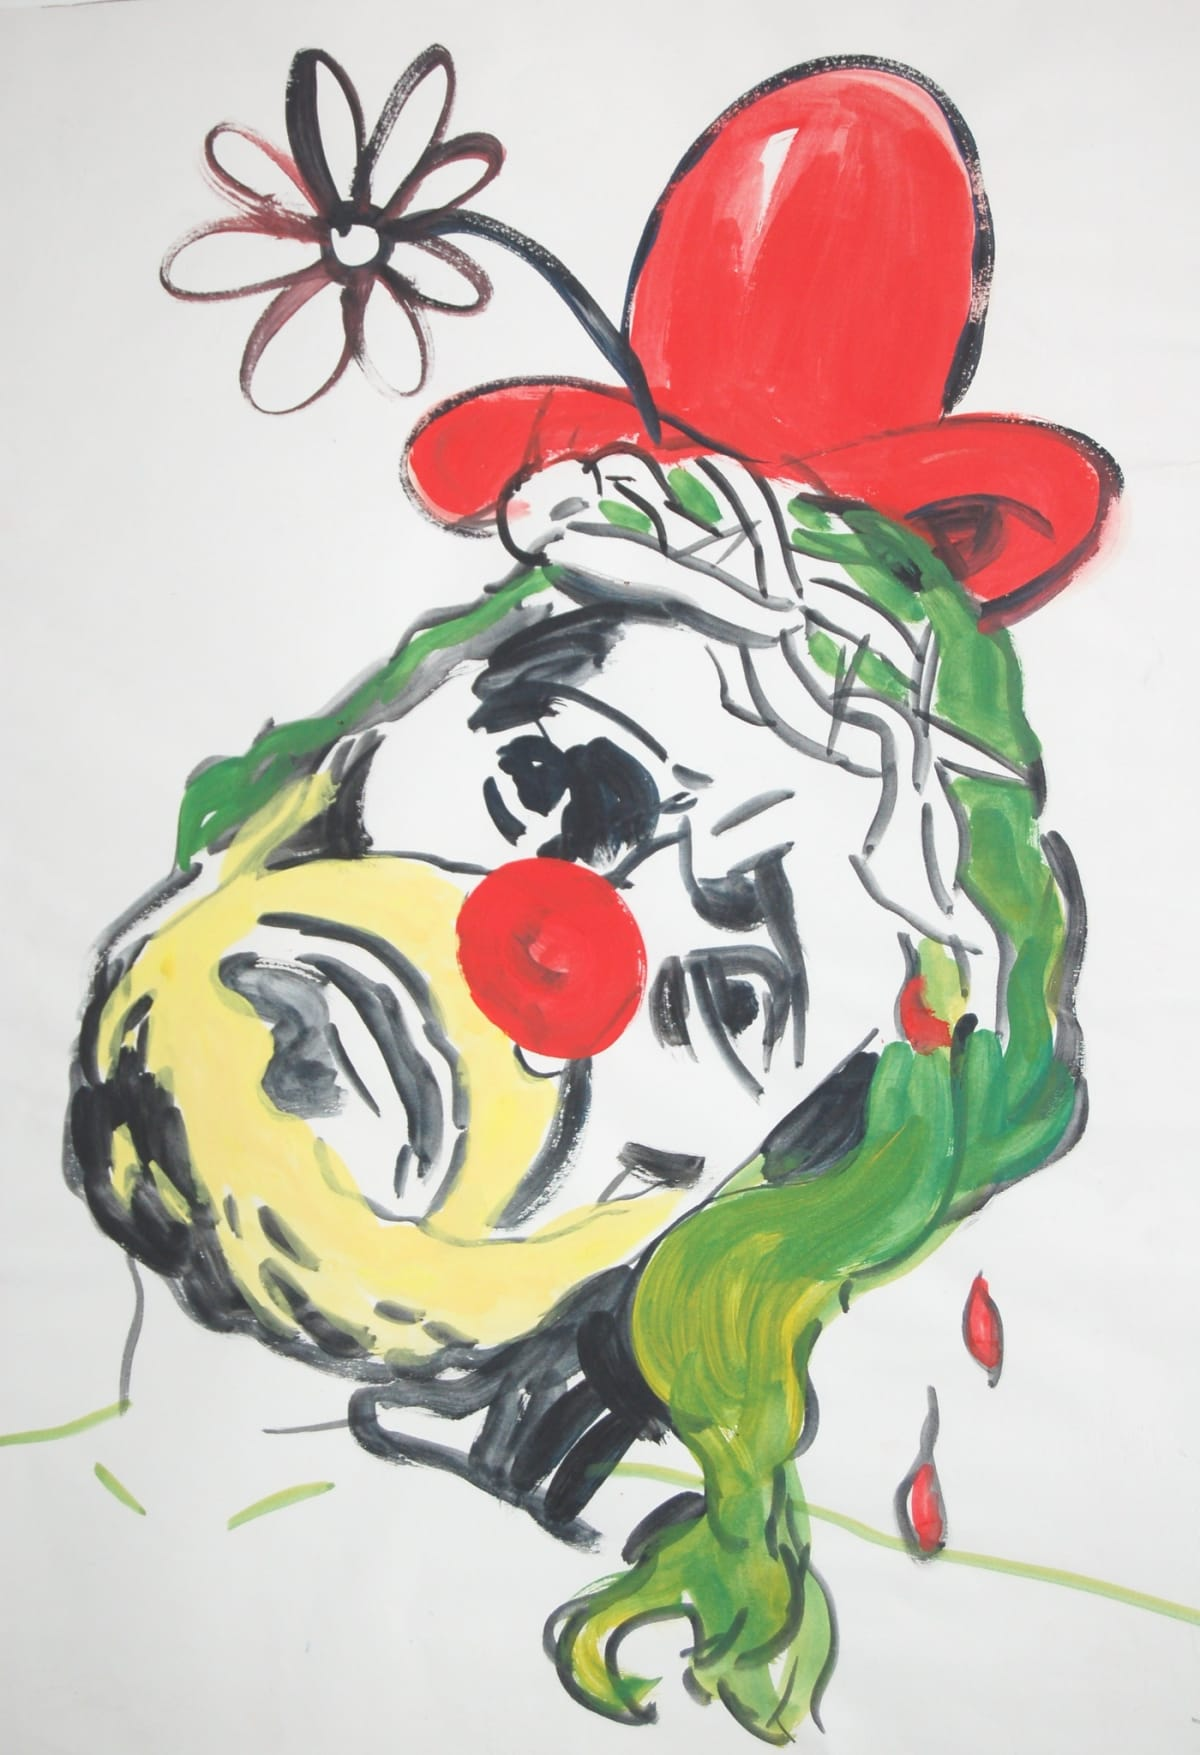 Shaun Doyle & Mally Mallinson Christ Clown, 2006 Gouache on paper. Signed and dated by the artists. 59 x 42 cm